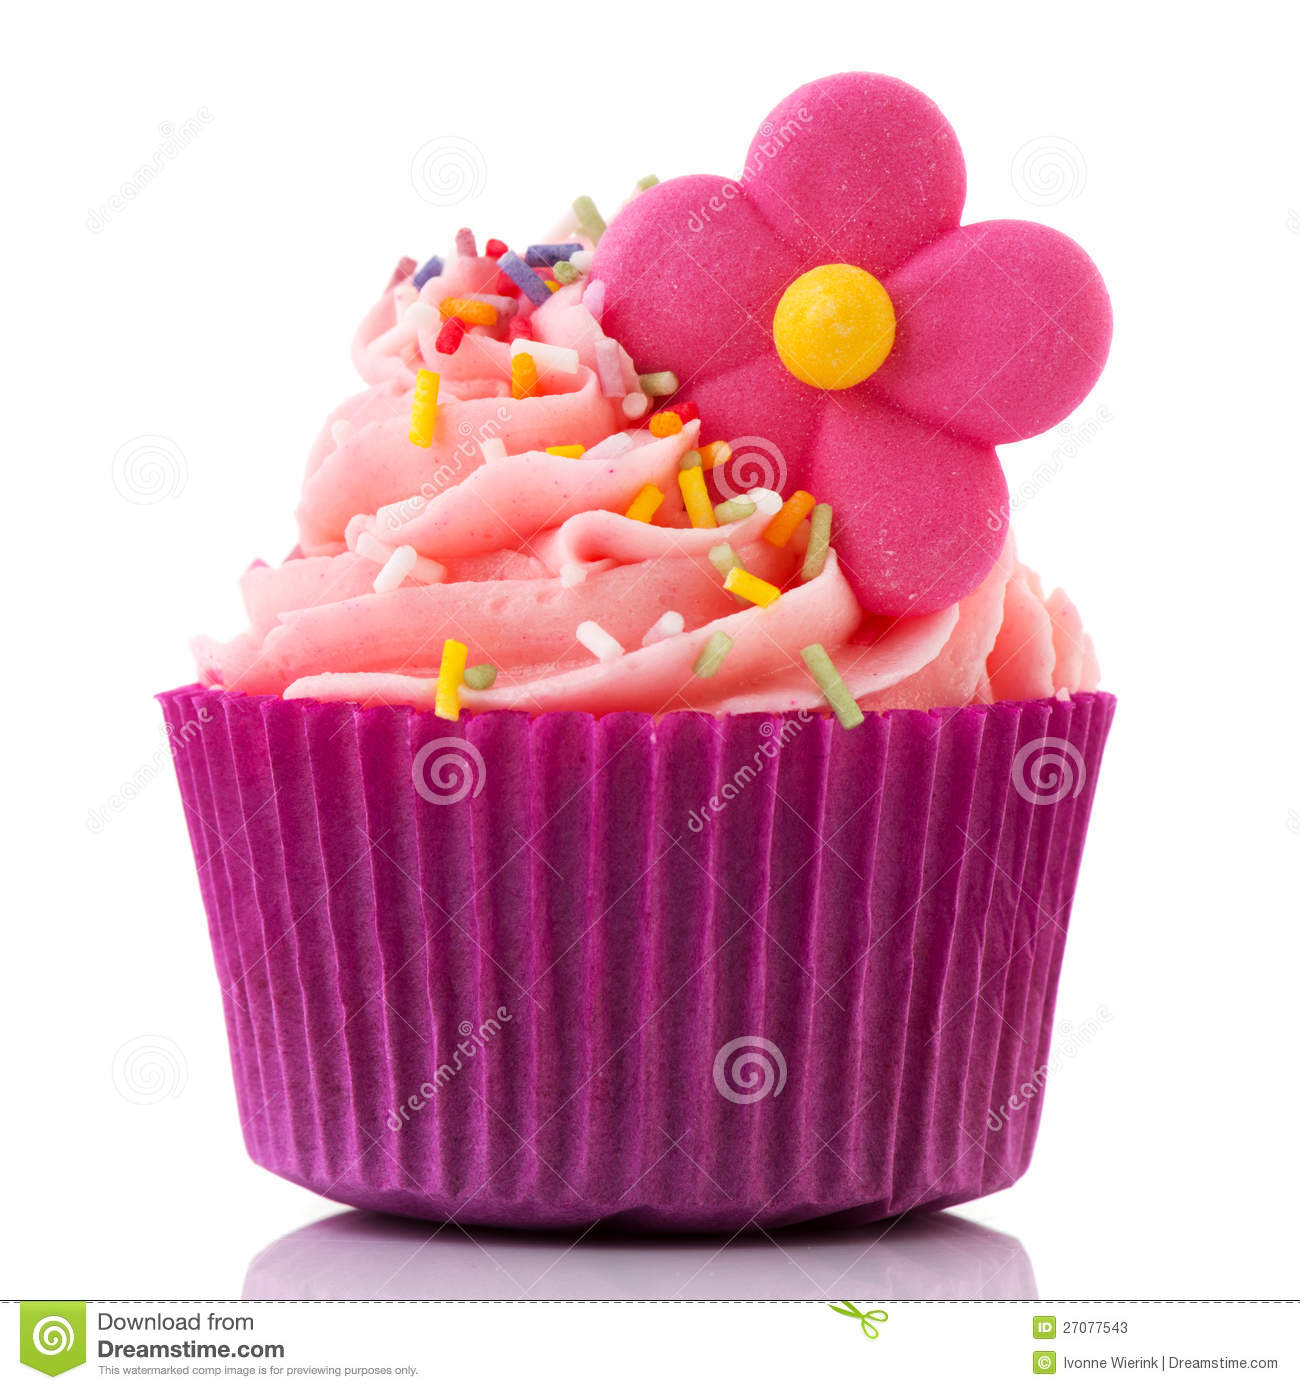 Colorful Single Cupcake In Purple Stock Image - Image of ...